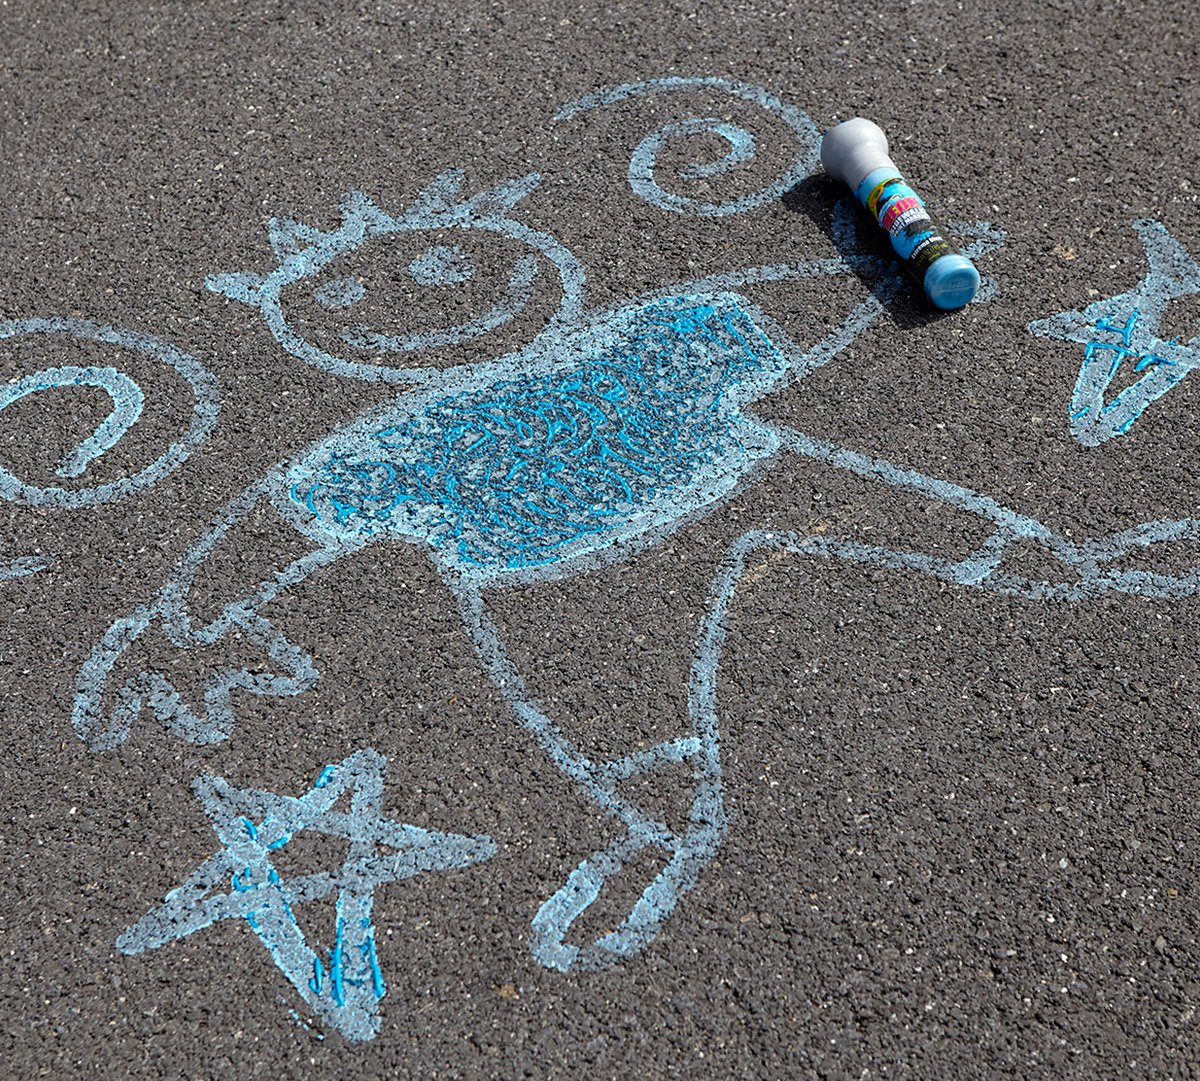 Crayola Neon Paint Markers, Outdoor Toy Sidewalk Paint, 4 Color Pack by Crayola (Image #5)